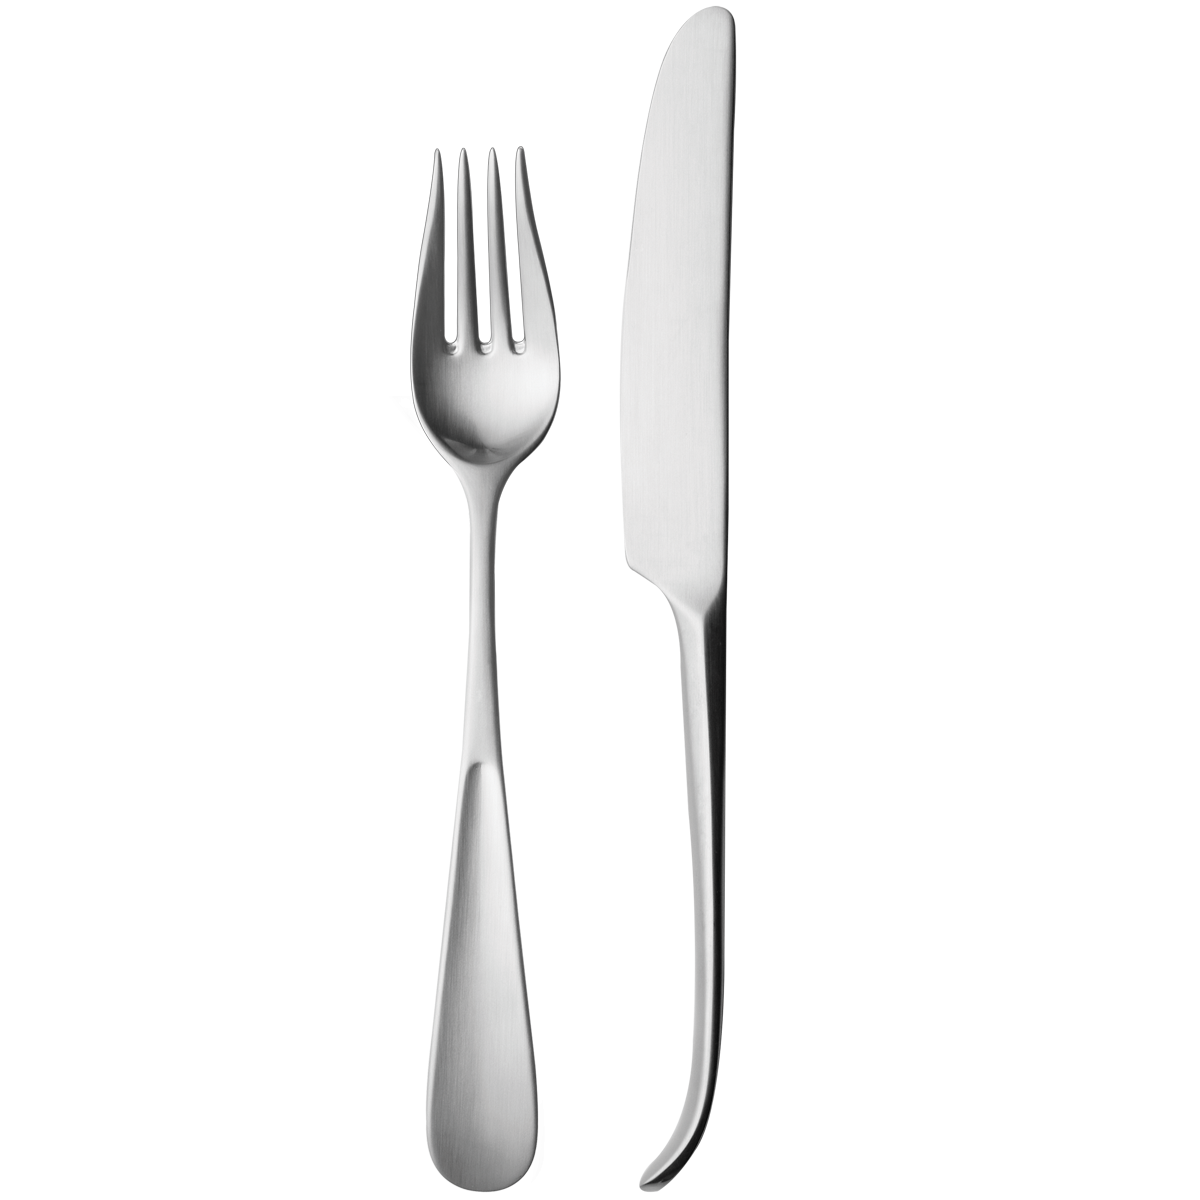 knife and fork clipart best vintage cutlery clipart cutlery engraving fork knife